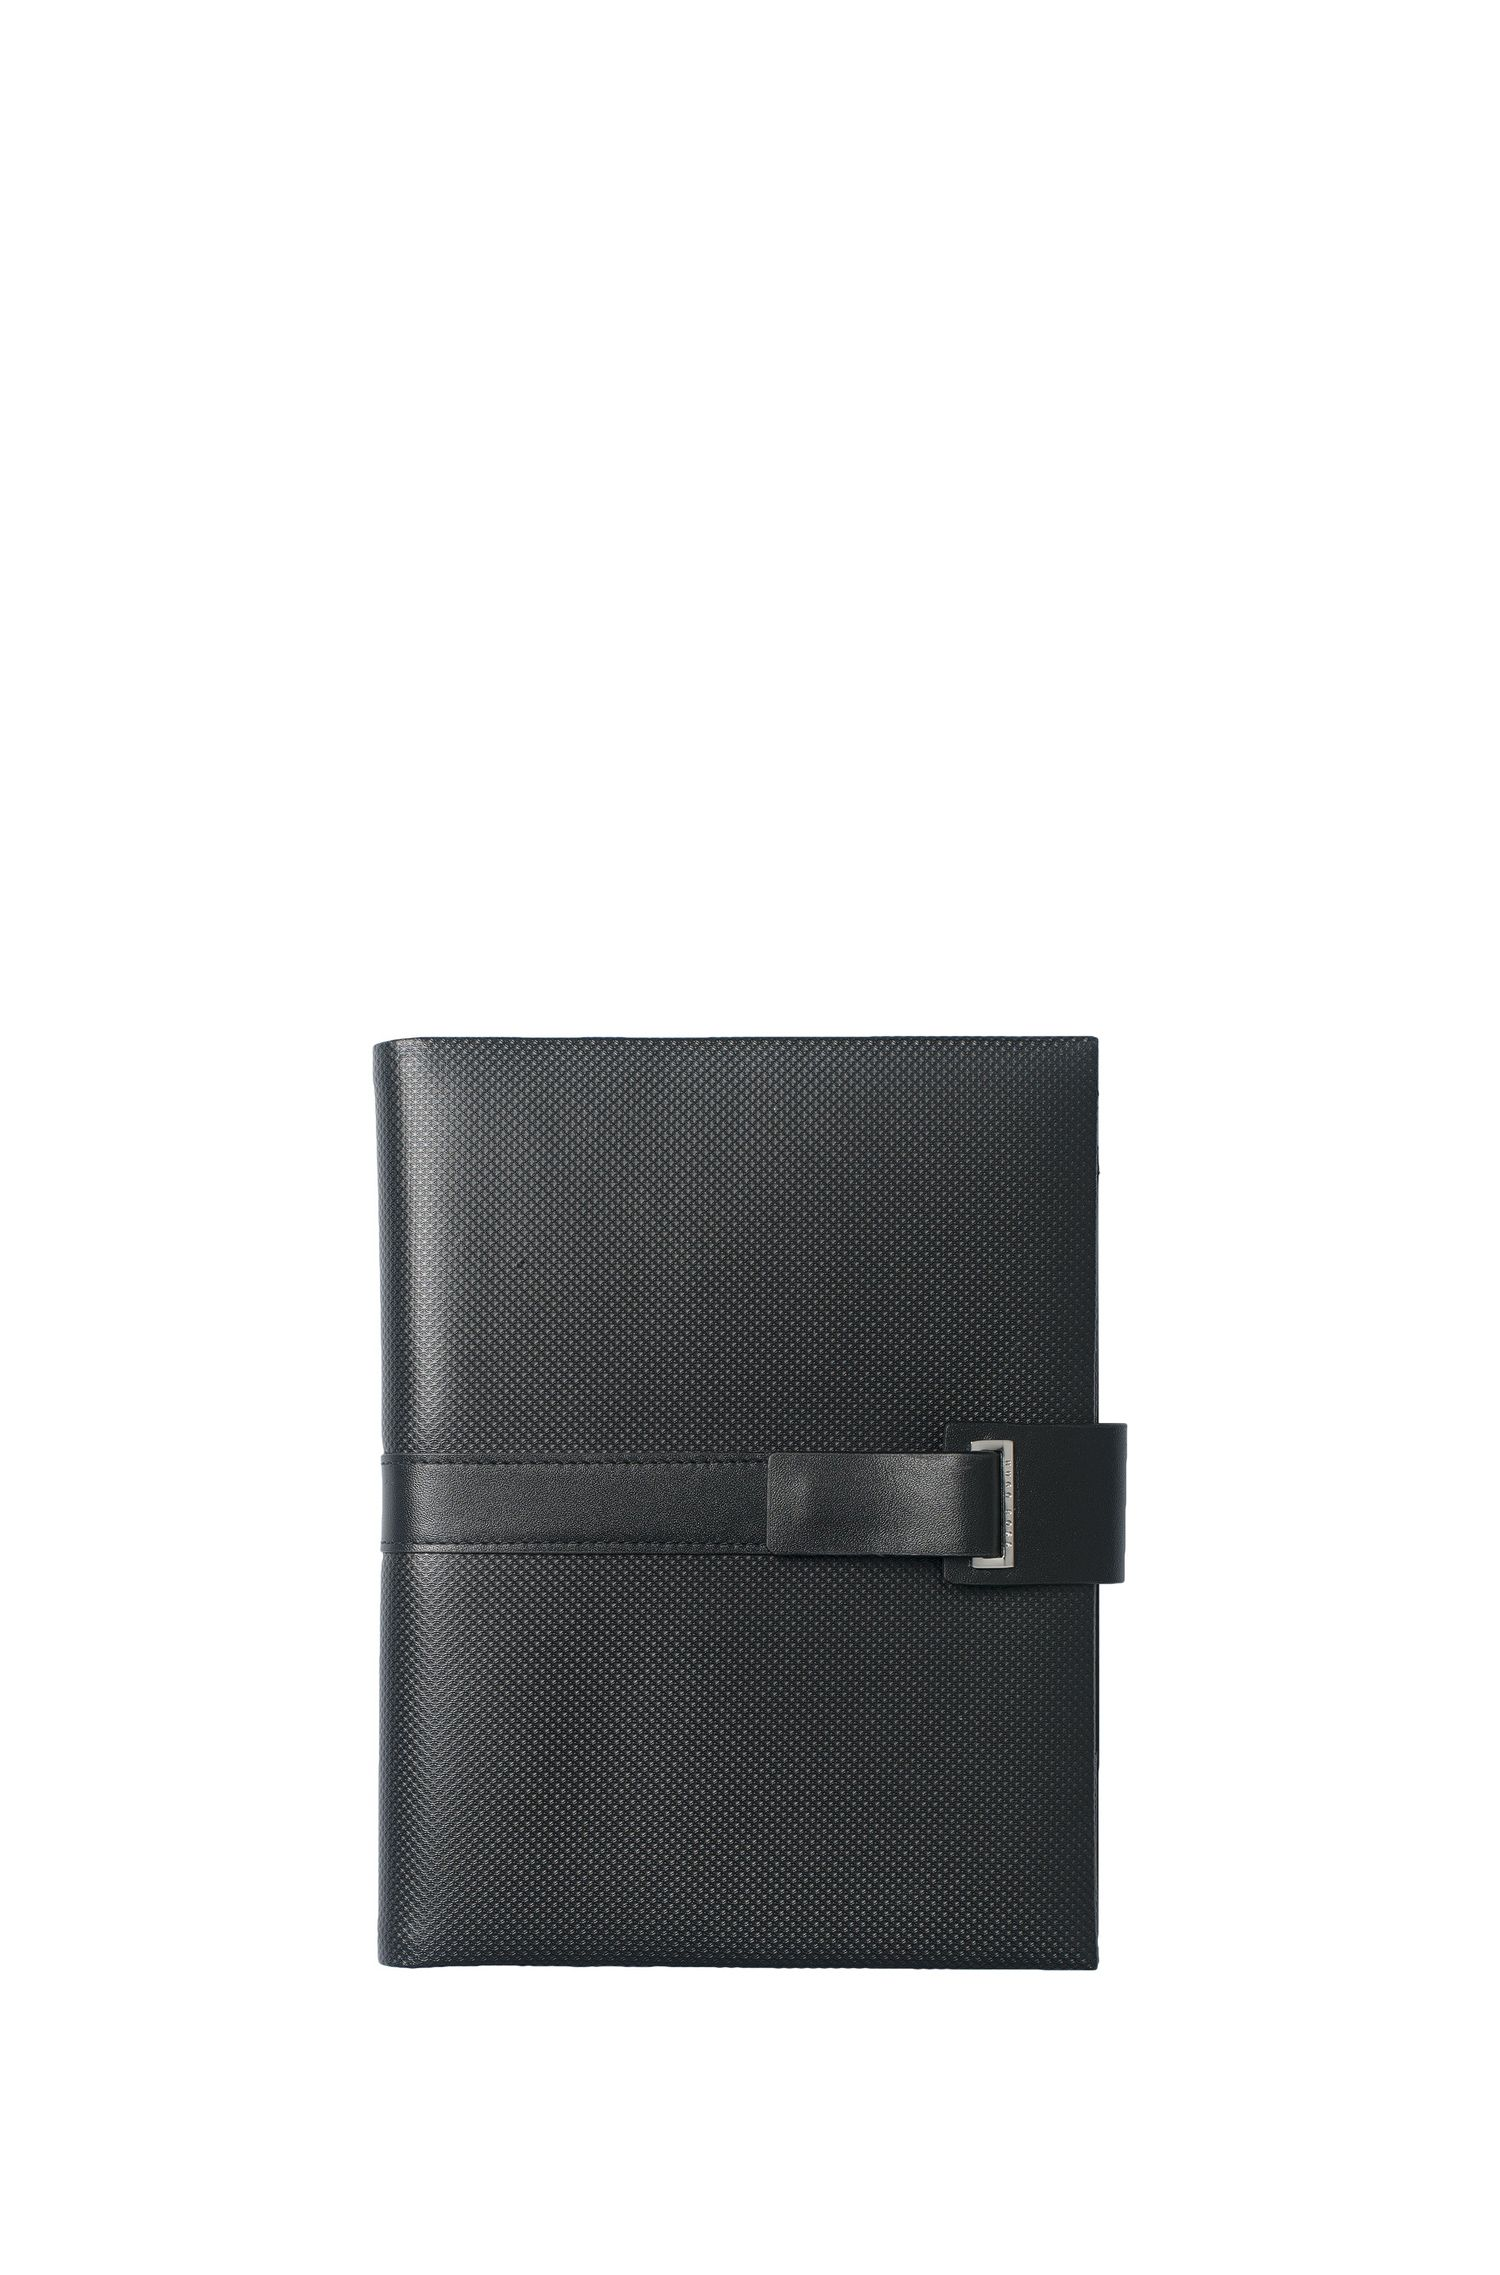 Matt black leather A5 folder with notepad, Black